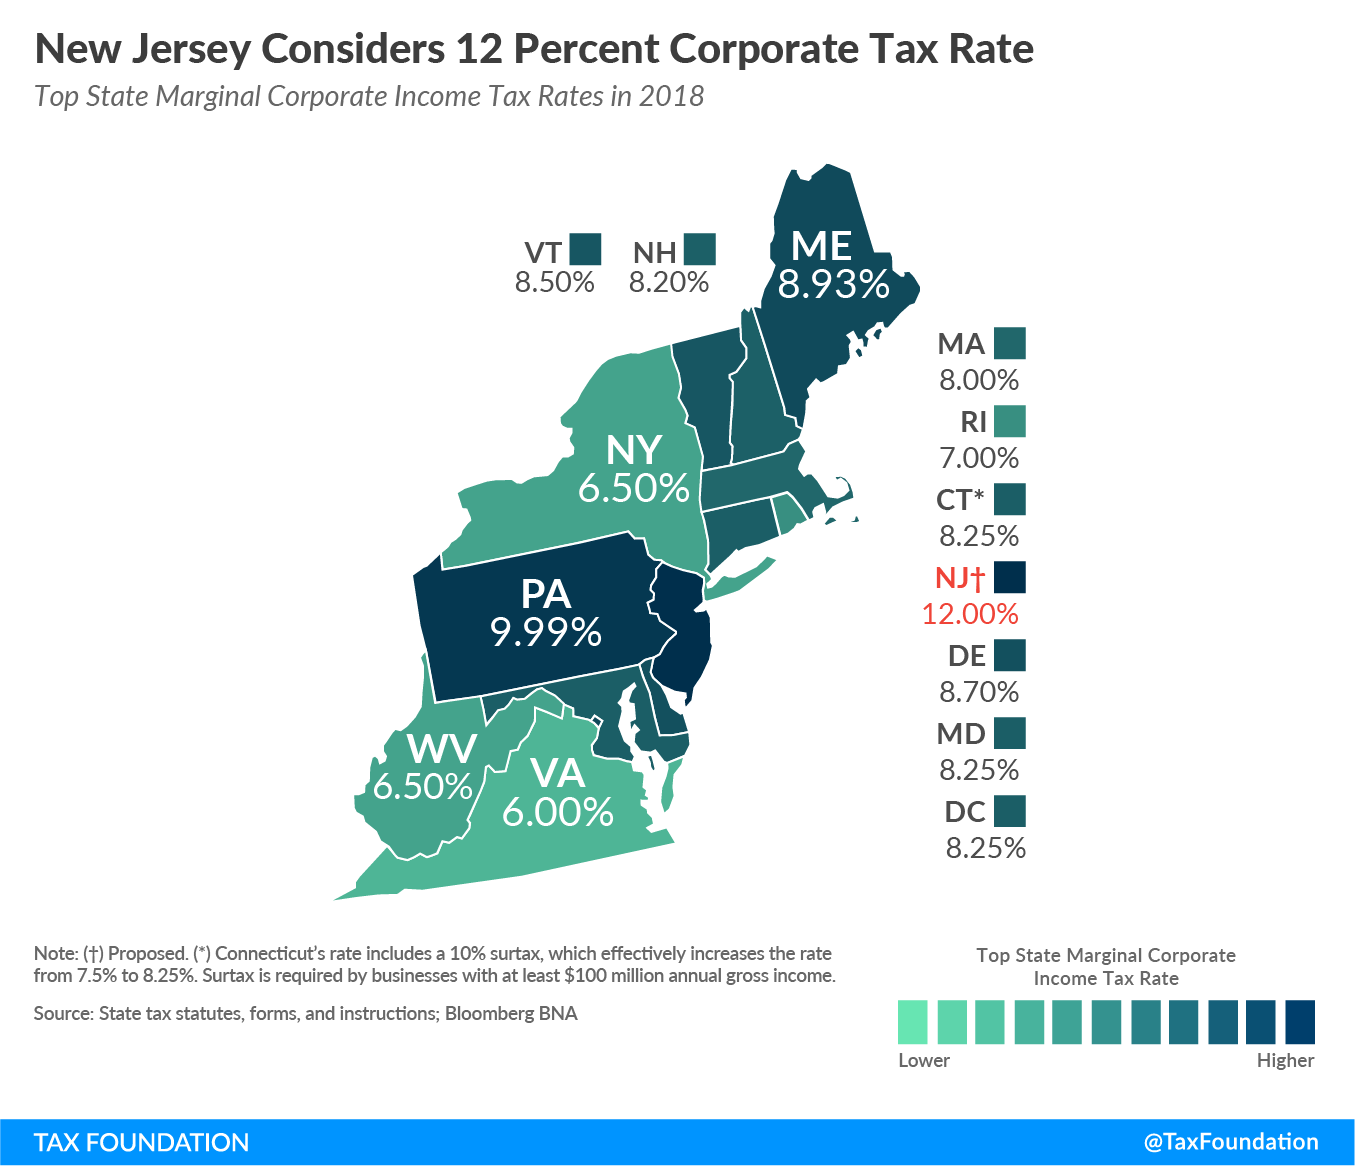 New Jersey Considers 12 Percent Corporate Tax Rate